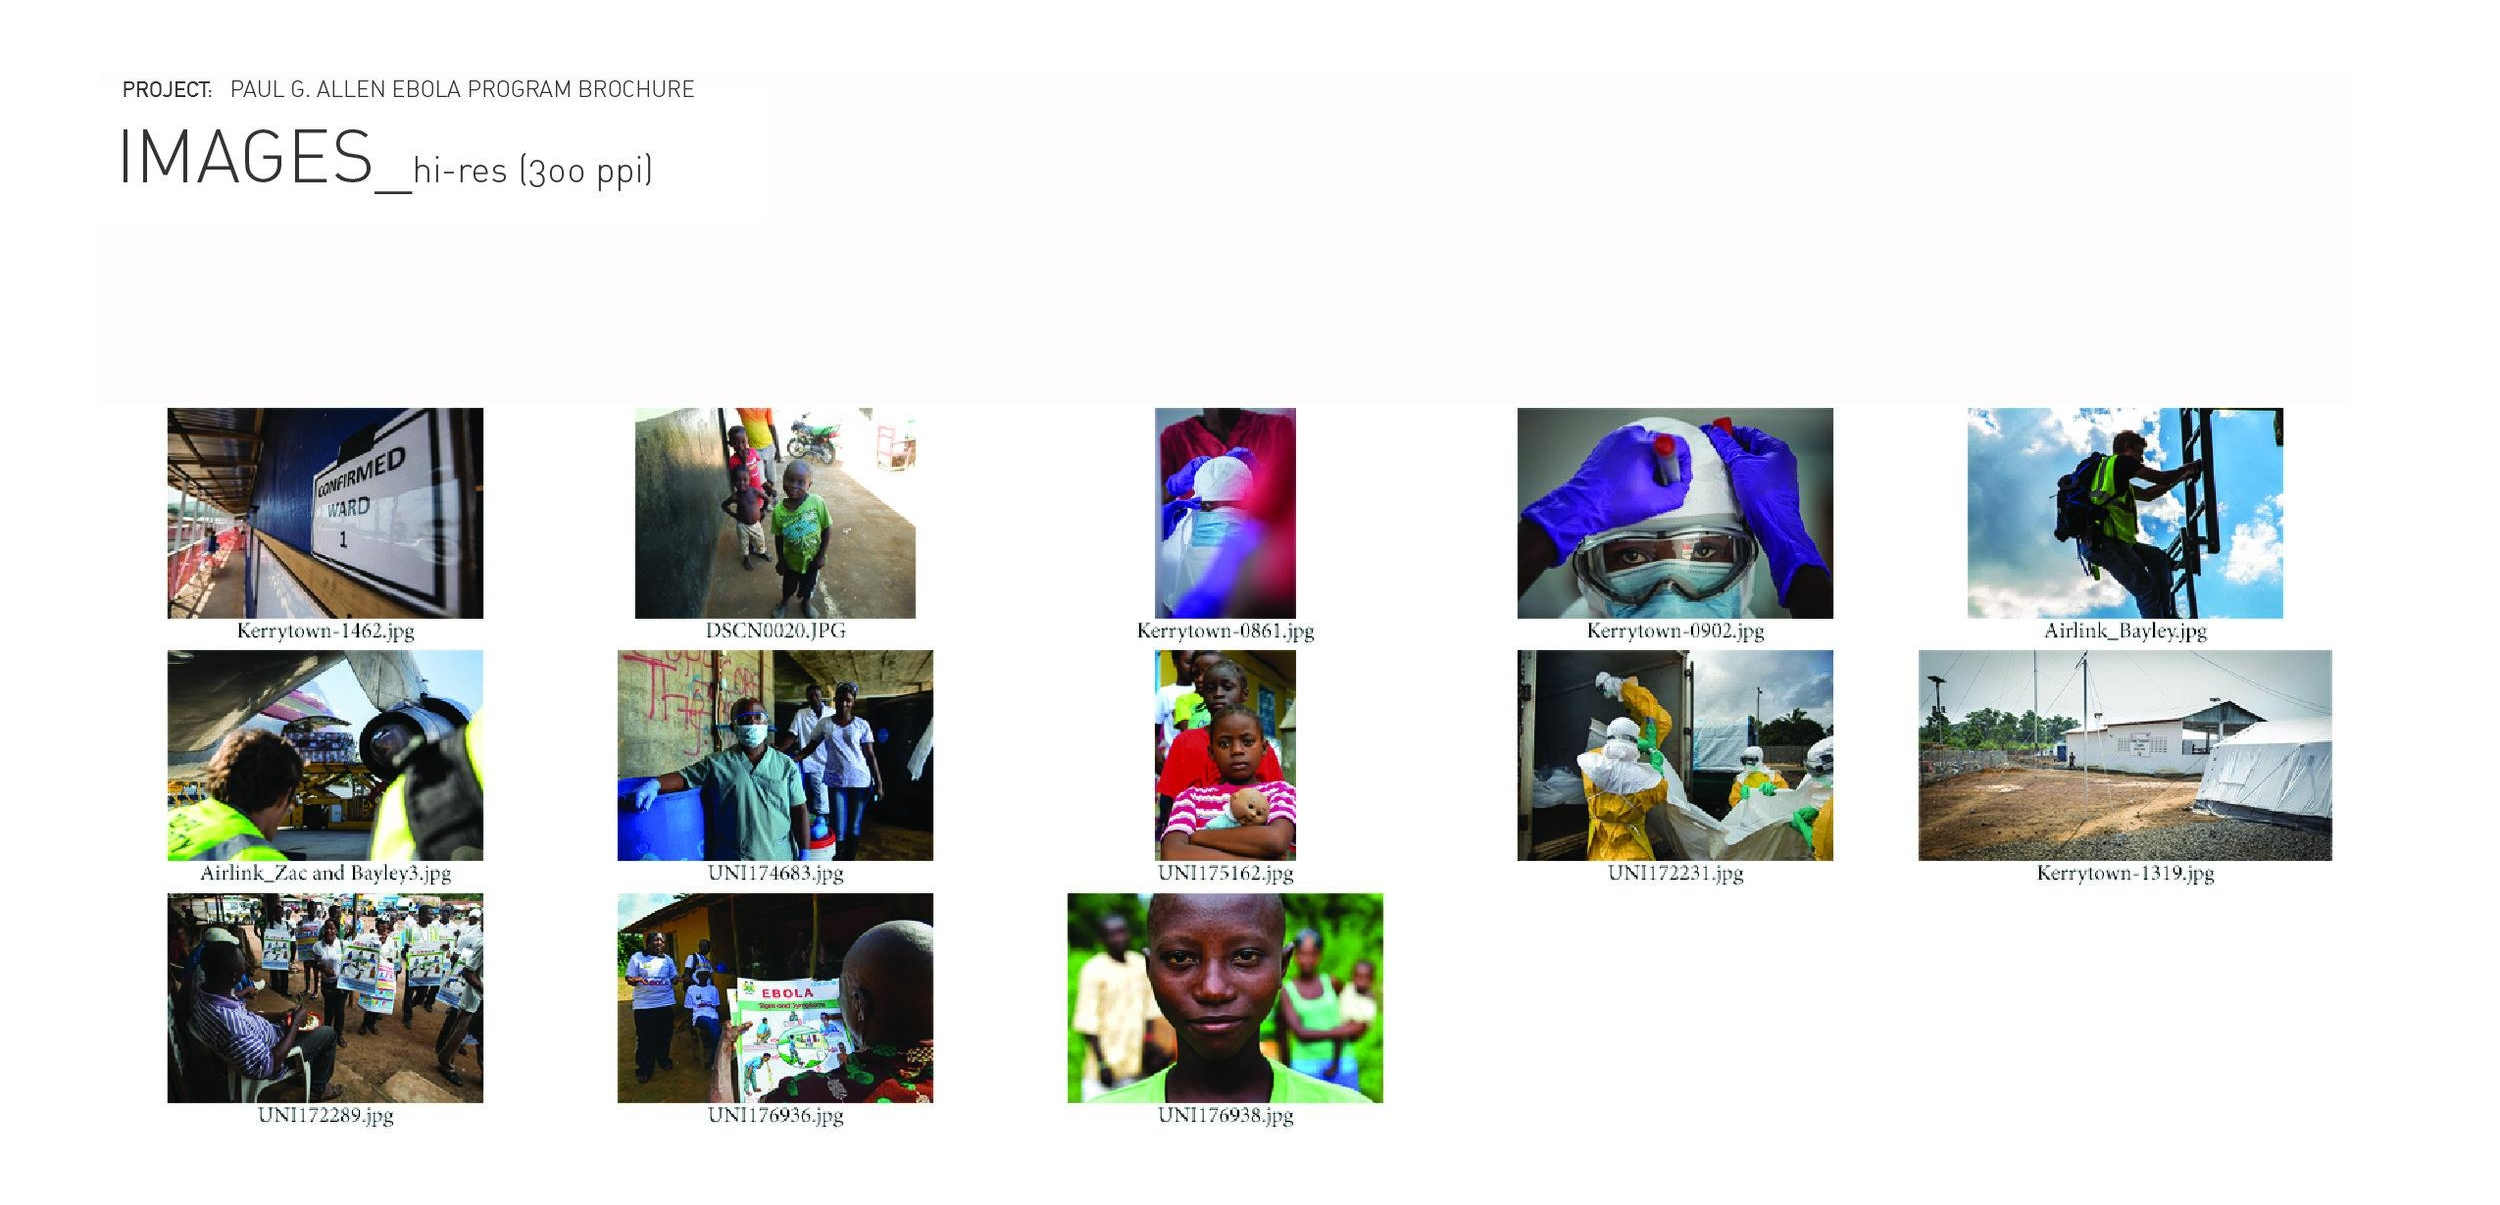 All the photos were shot in the field during the Ebola crisis, under varying conditions. After reviewing the shots and selecting the best images, I decided to design photo illustrations as a supporting element to the primary photography adding more depth and texture. The client was surprised and thrilled by this move.